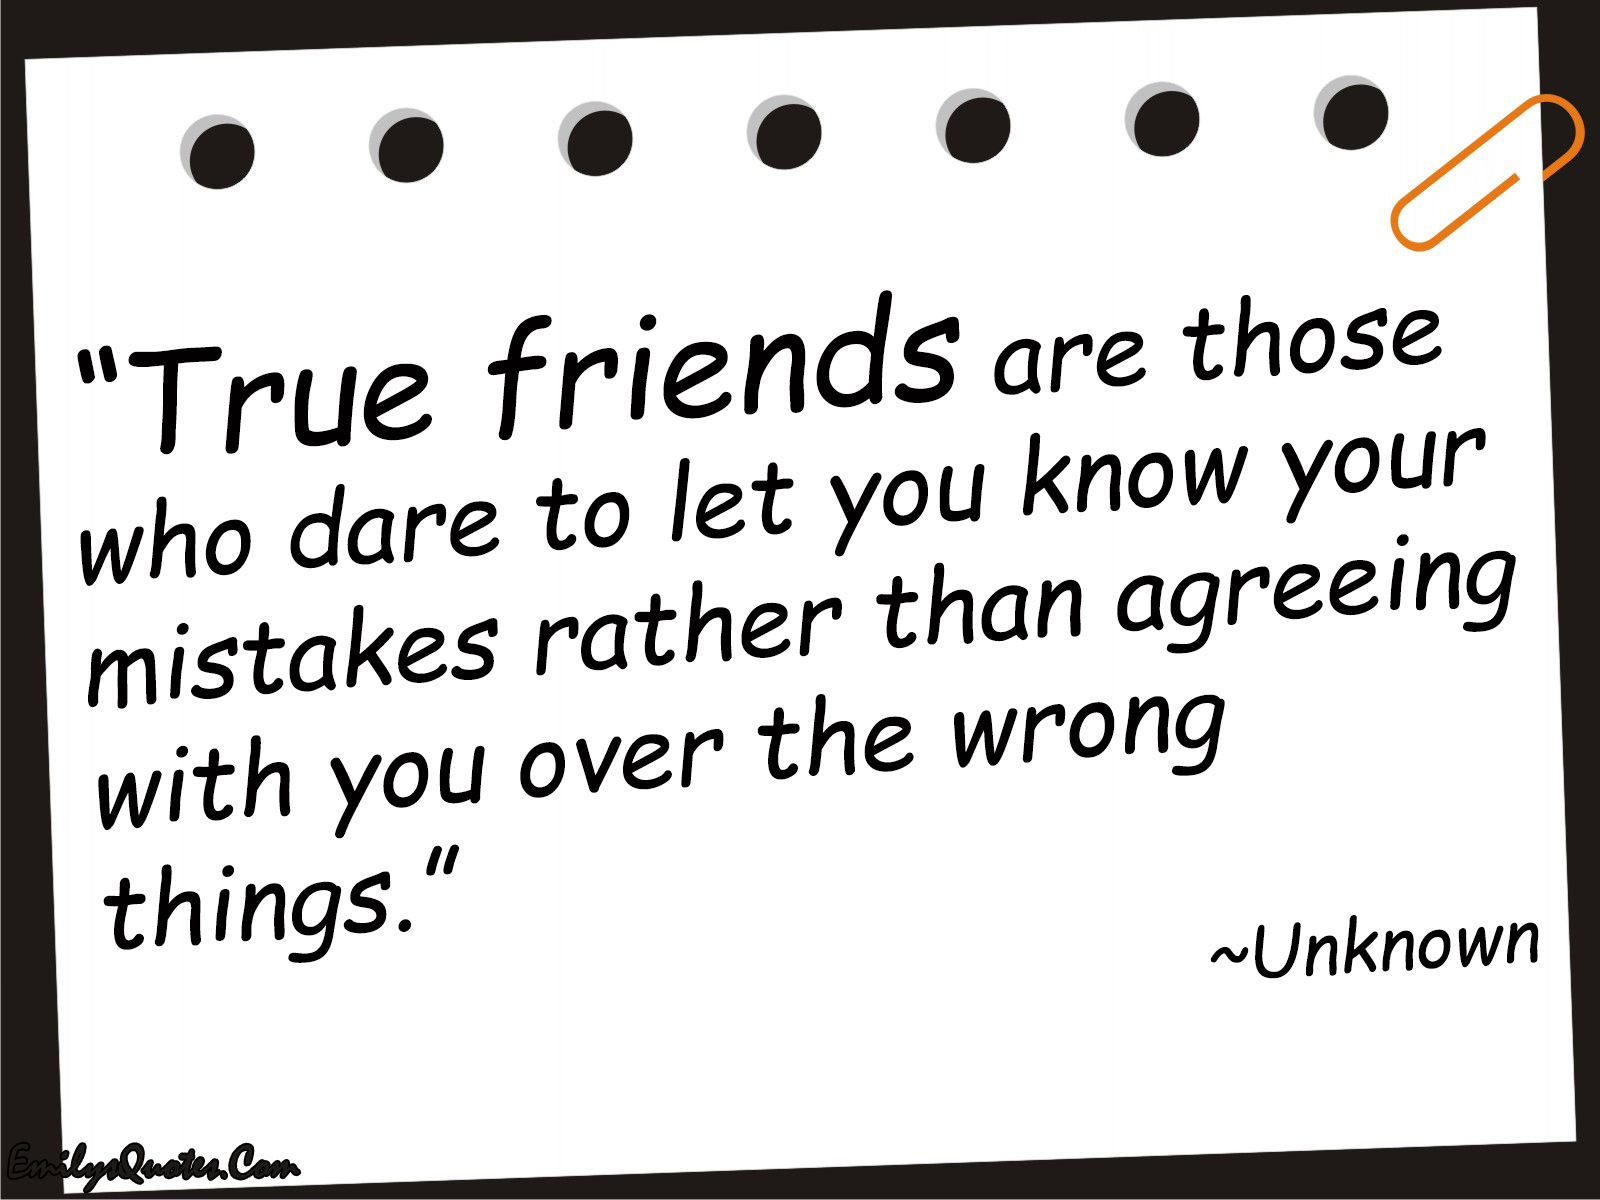 True friends are those who dare to let you know your mistakes ...